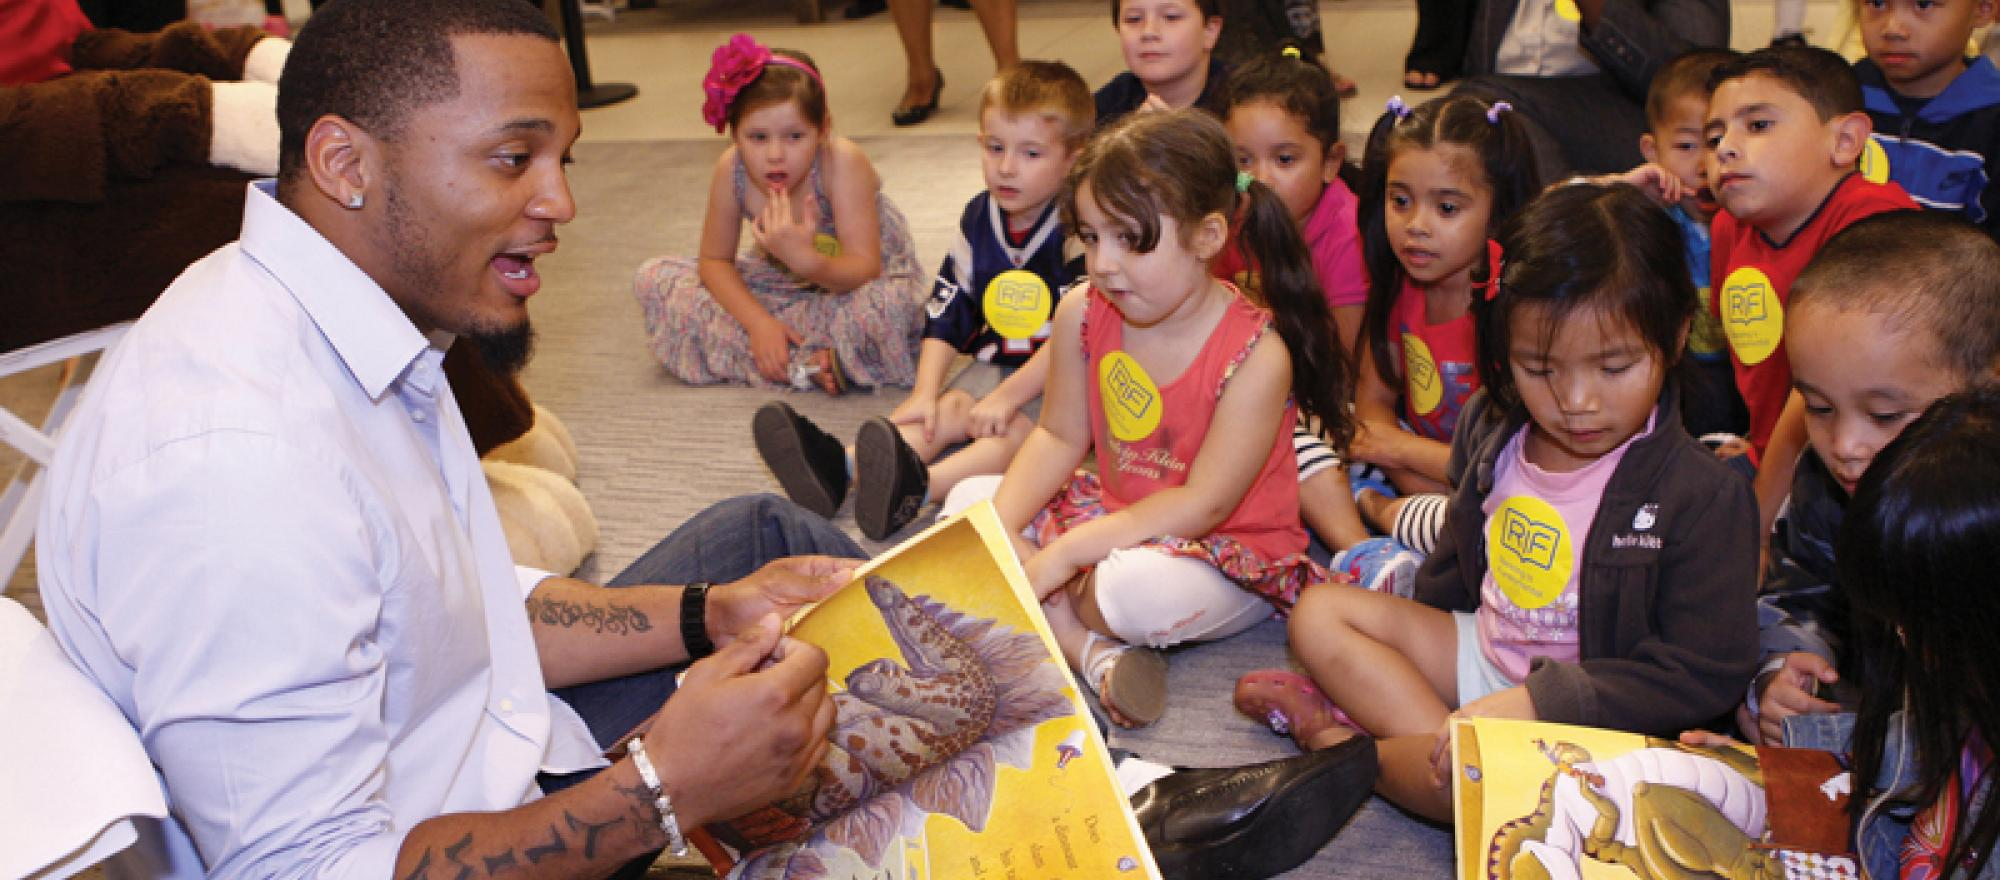 Patrick Chung, player for the New England Patriots, reads to children in Boston at the Macy's store. Macy's is a long-time sponsor of RIF.